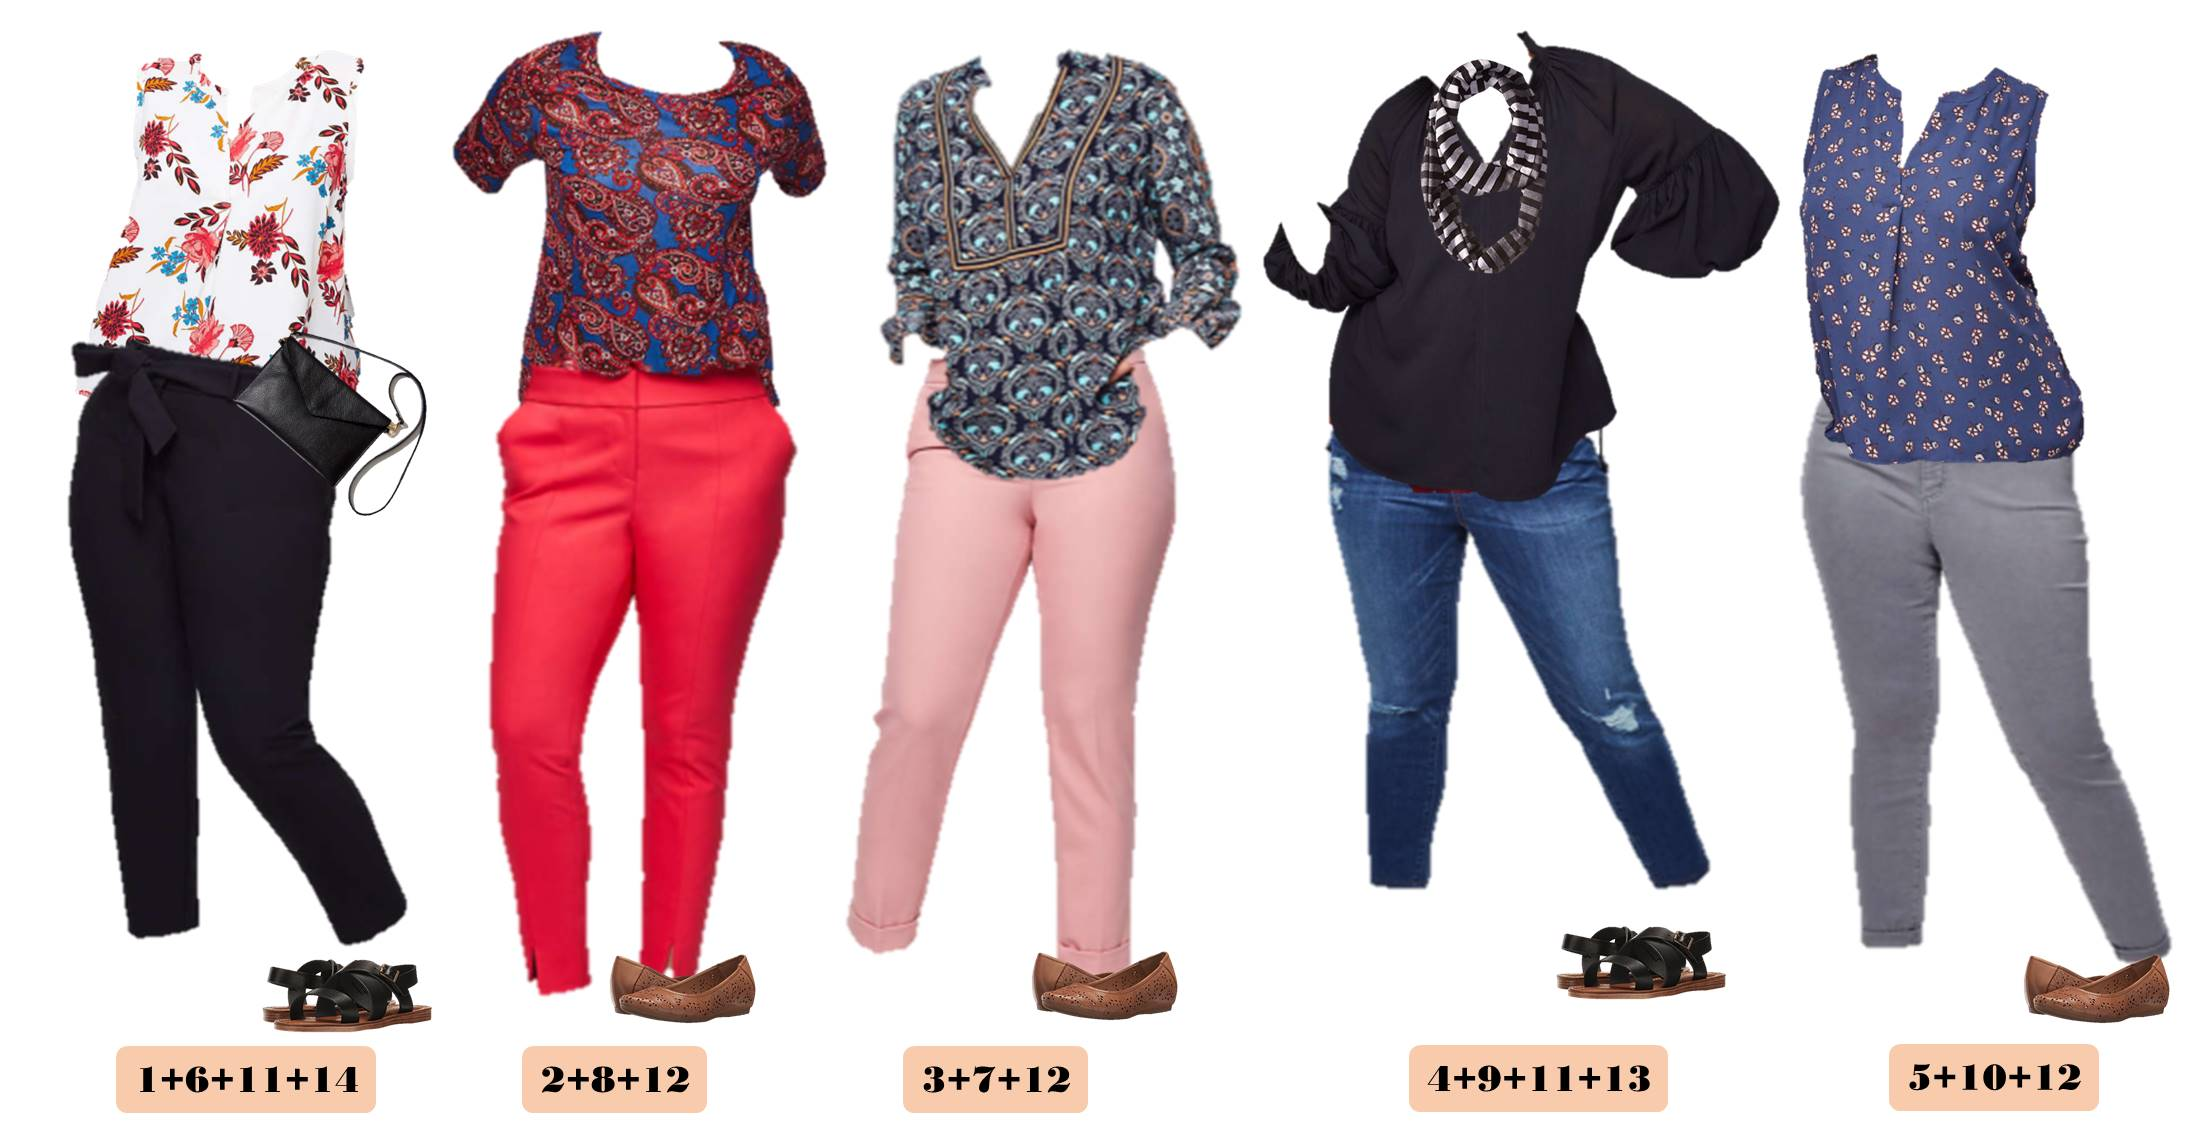 5 mix and match Loft Plus Size Outfits. Pink pants and floral tops.